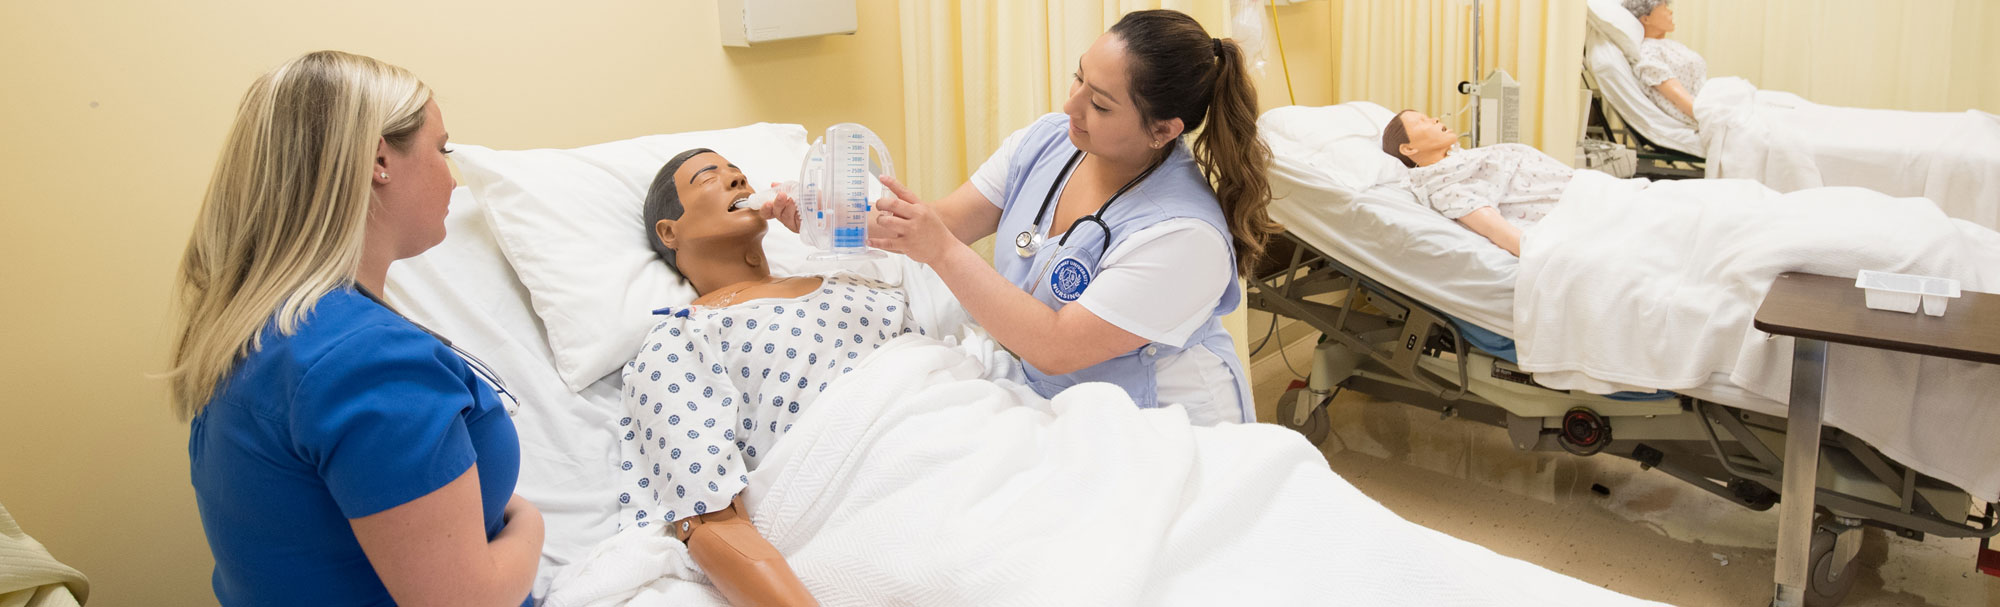 Bachelor of Science in Nursing | Majors & Programs | Midway